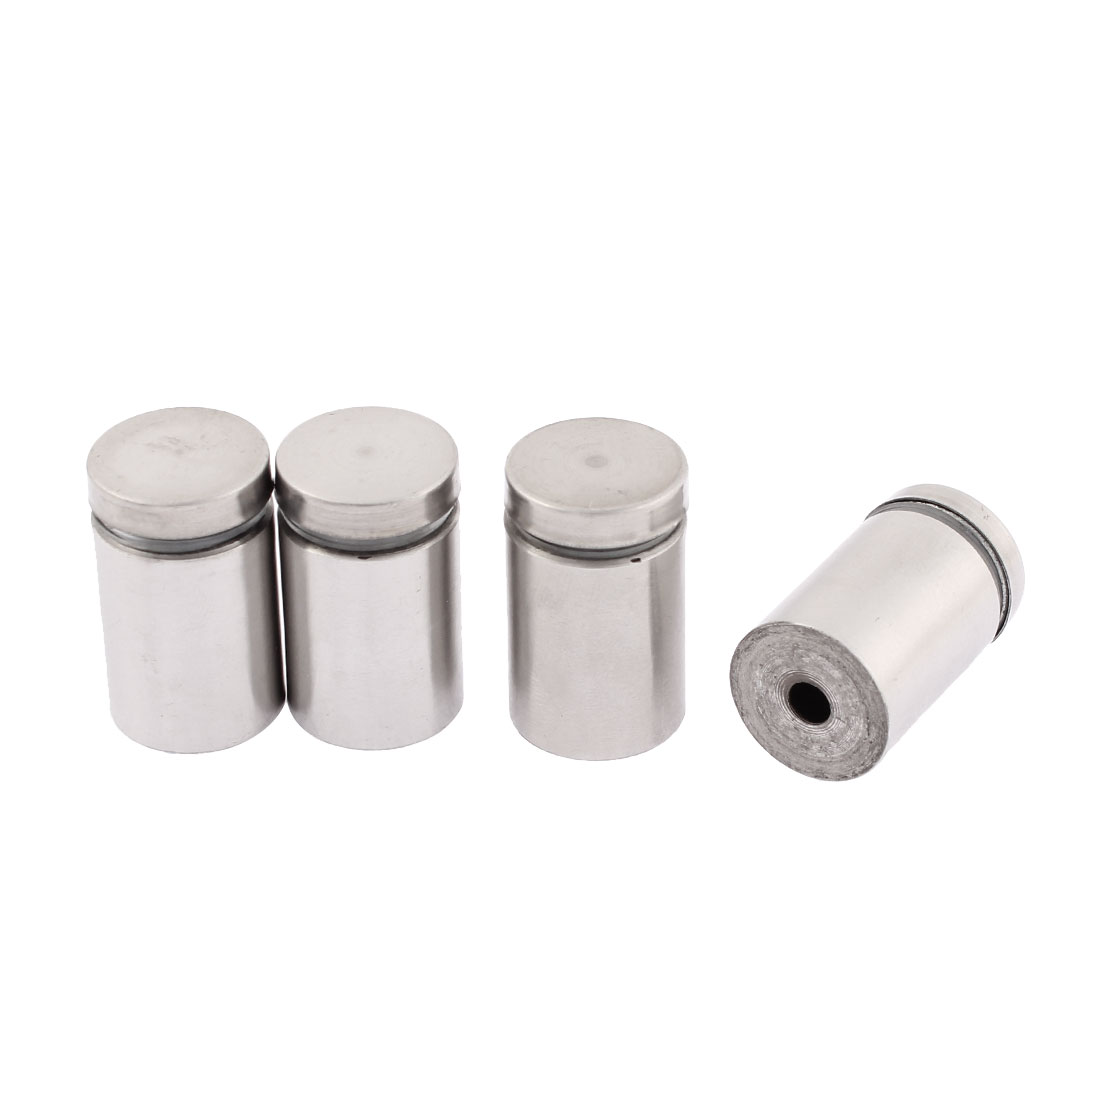 4 Pcs 24mm Base 19mm x 30mm Silver Tone Stainless Steel Standoff Hardware Clamp Nail for Glass Advertising Picture Poster Frame Hanger